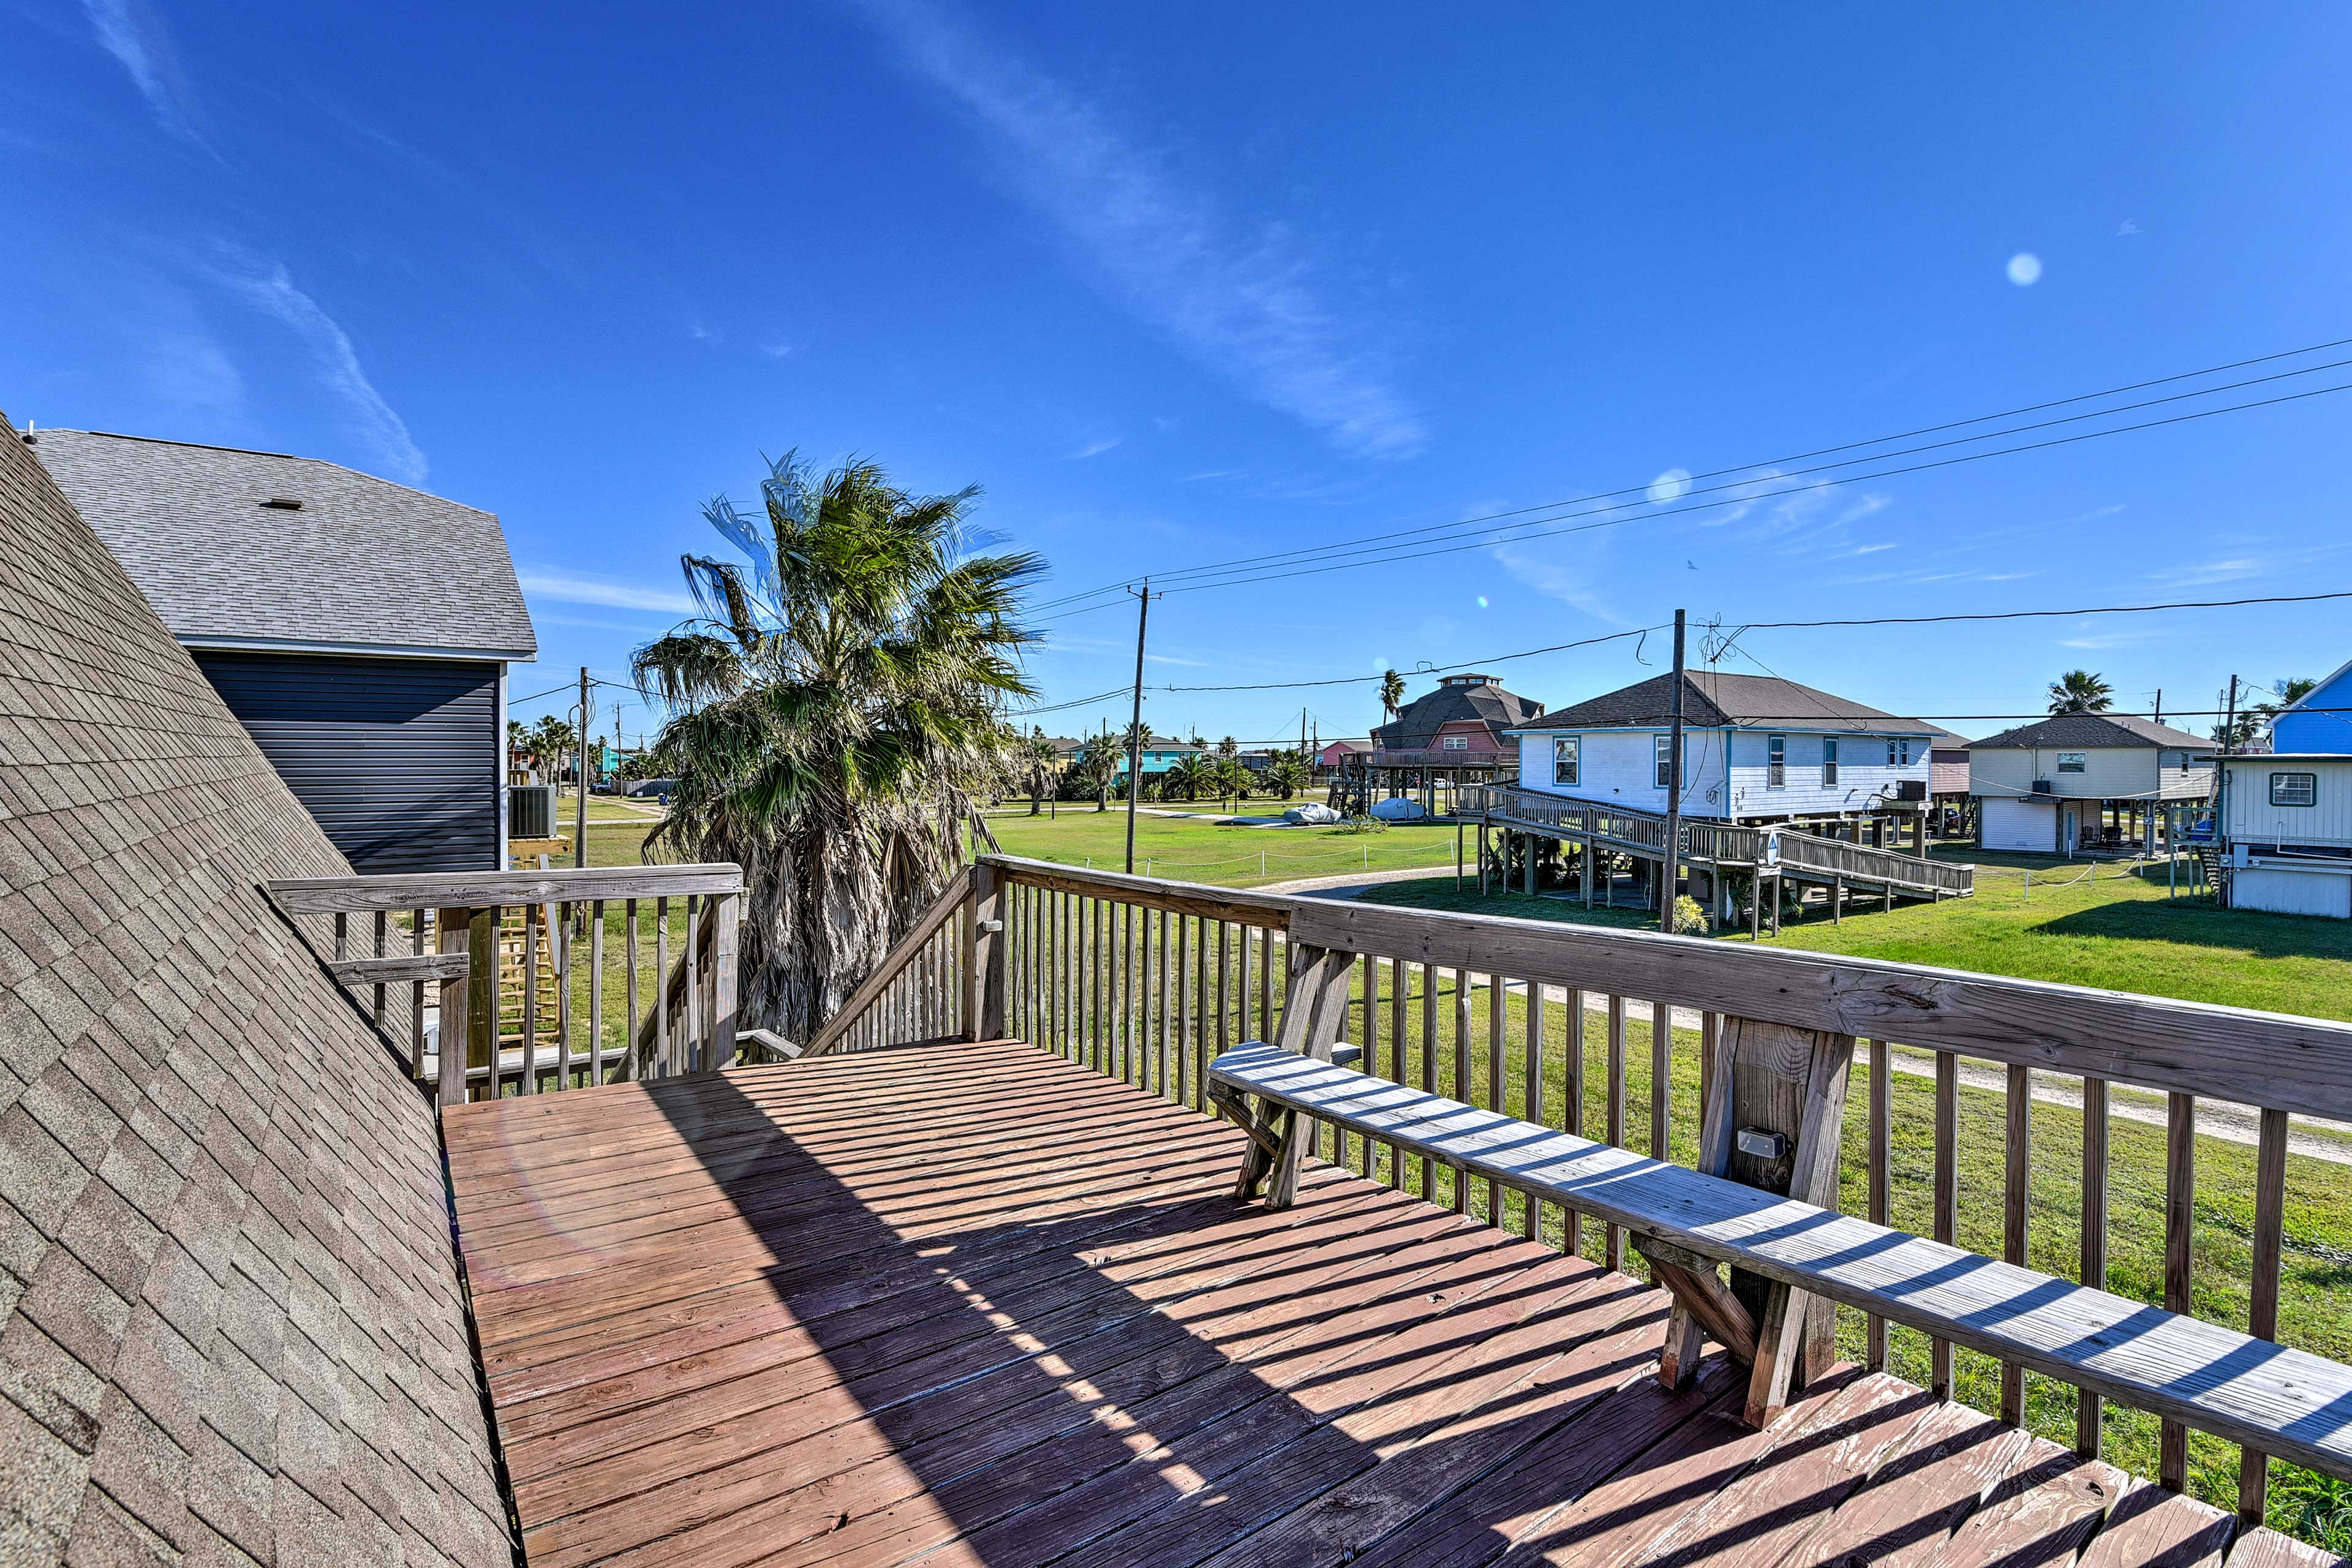 You'll love being just 2 blocks from sandy beaches!